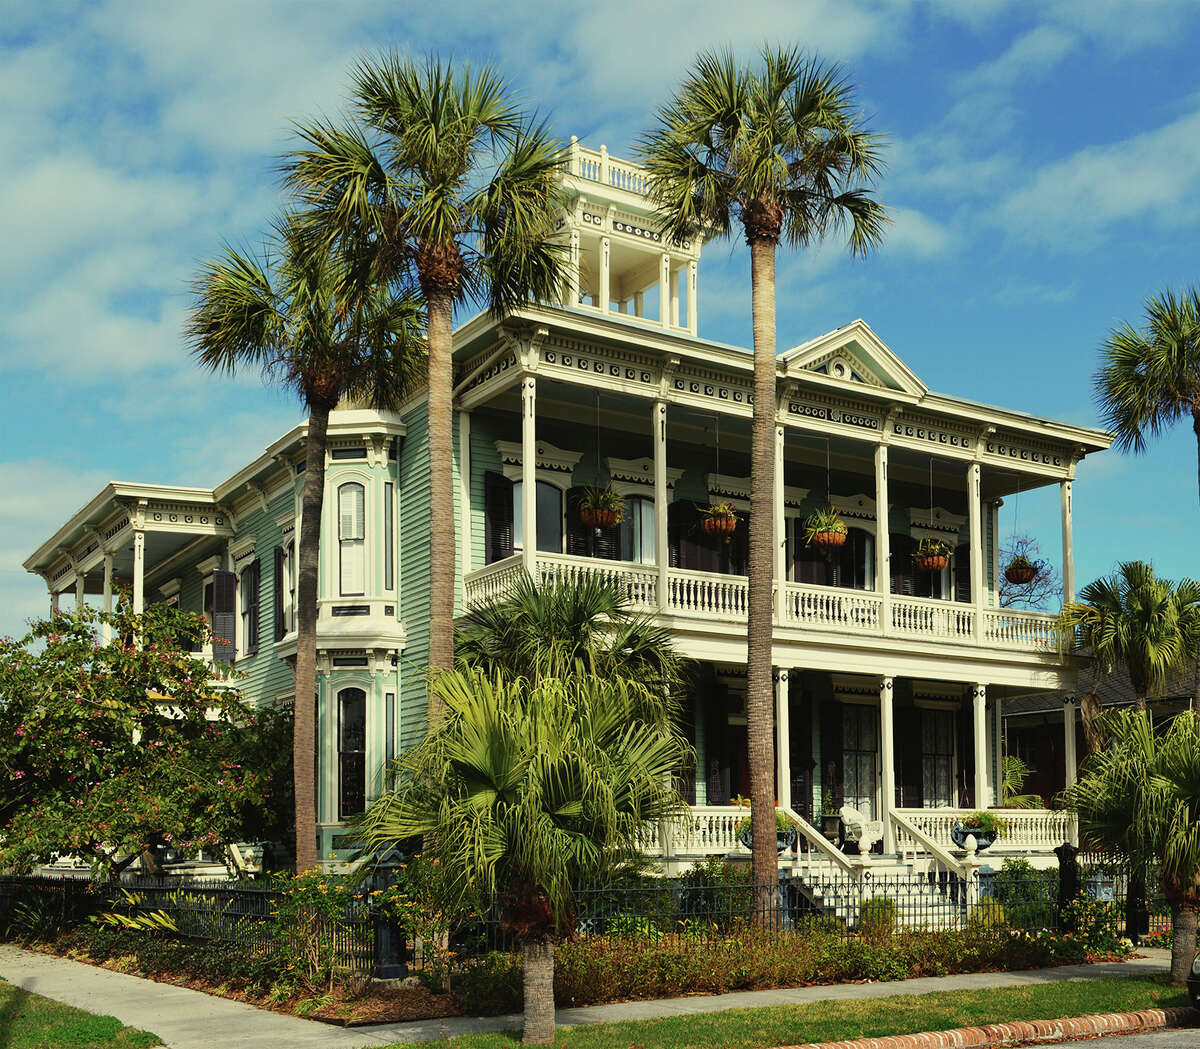 Thomas.J. Overmire's most significant residential work is the grand-scaled, five-bay, center hall plan 1875 Julius and Elizabeth Ruhl House. Designed for Julius Ruhl, bookkeeper for the Kaufmann & Runge Company, wholesale grocers and cotton exporters, the house is one of the most notable properties in the Galveston East End Historic District. The Ruhl family maintained ownership of the property until 1962; Chuck and Debbie Morris live there now, and restored it to former glory.